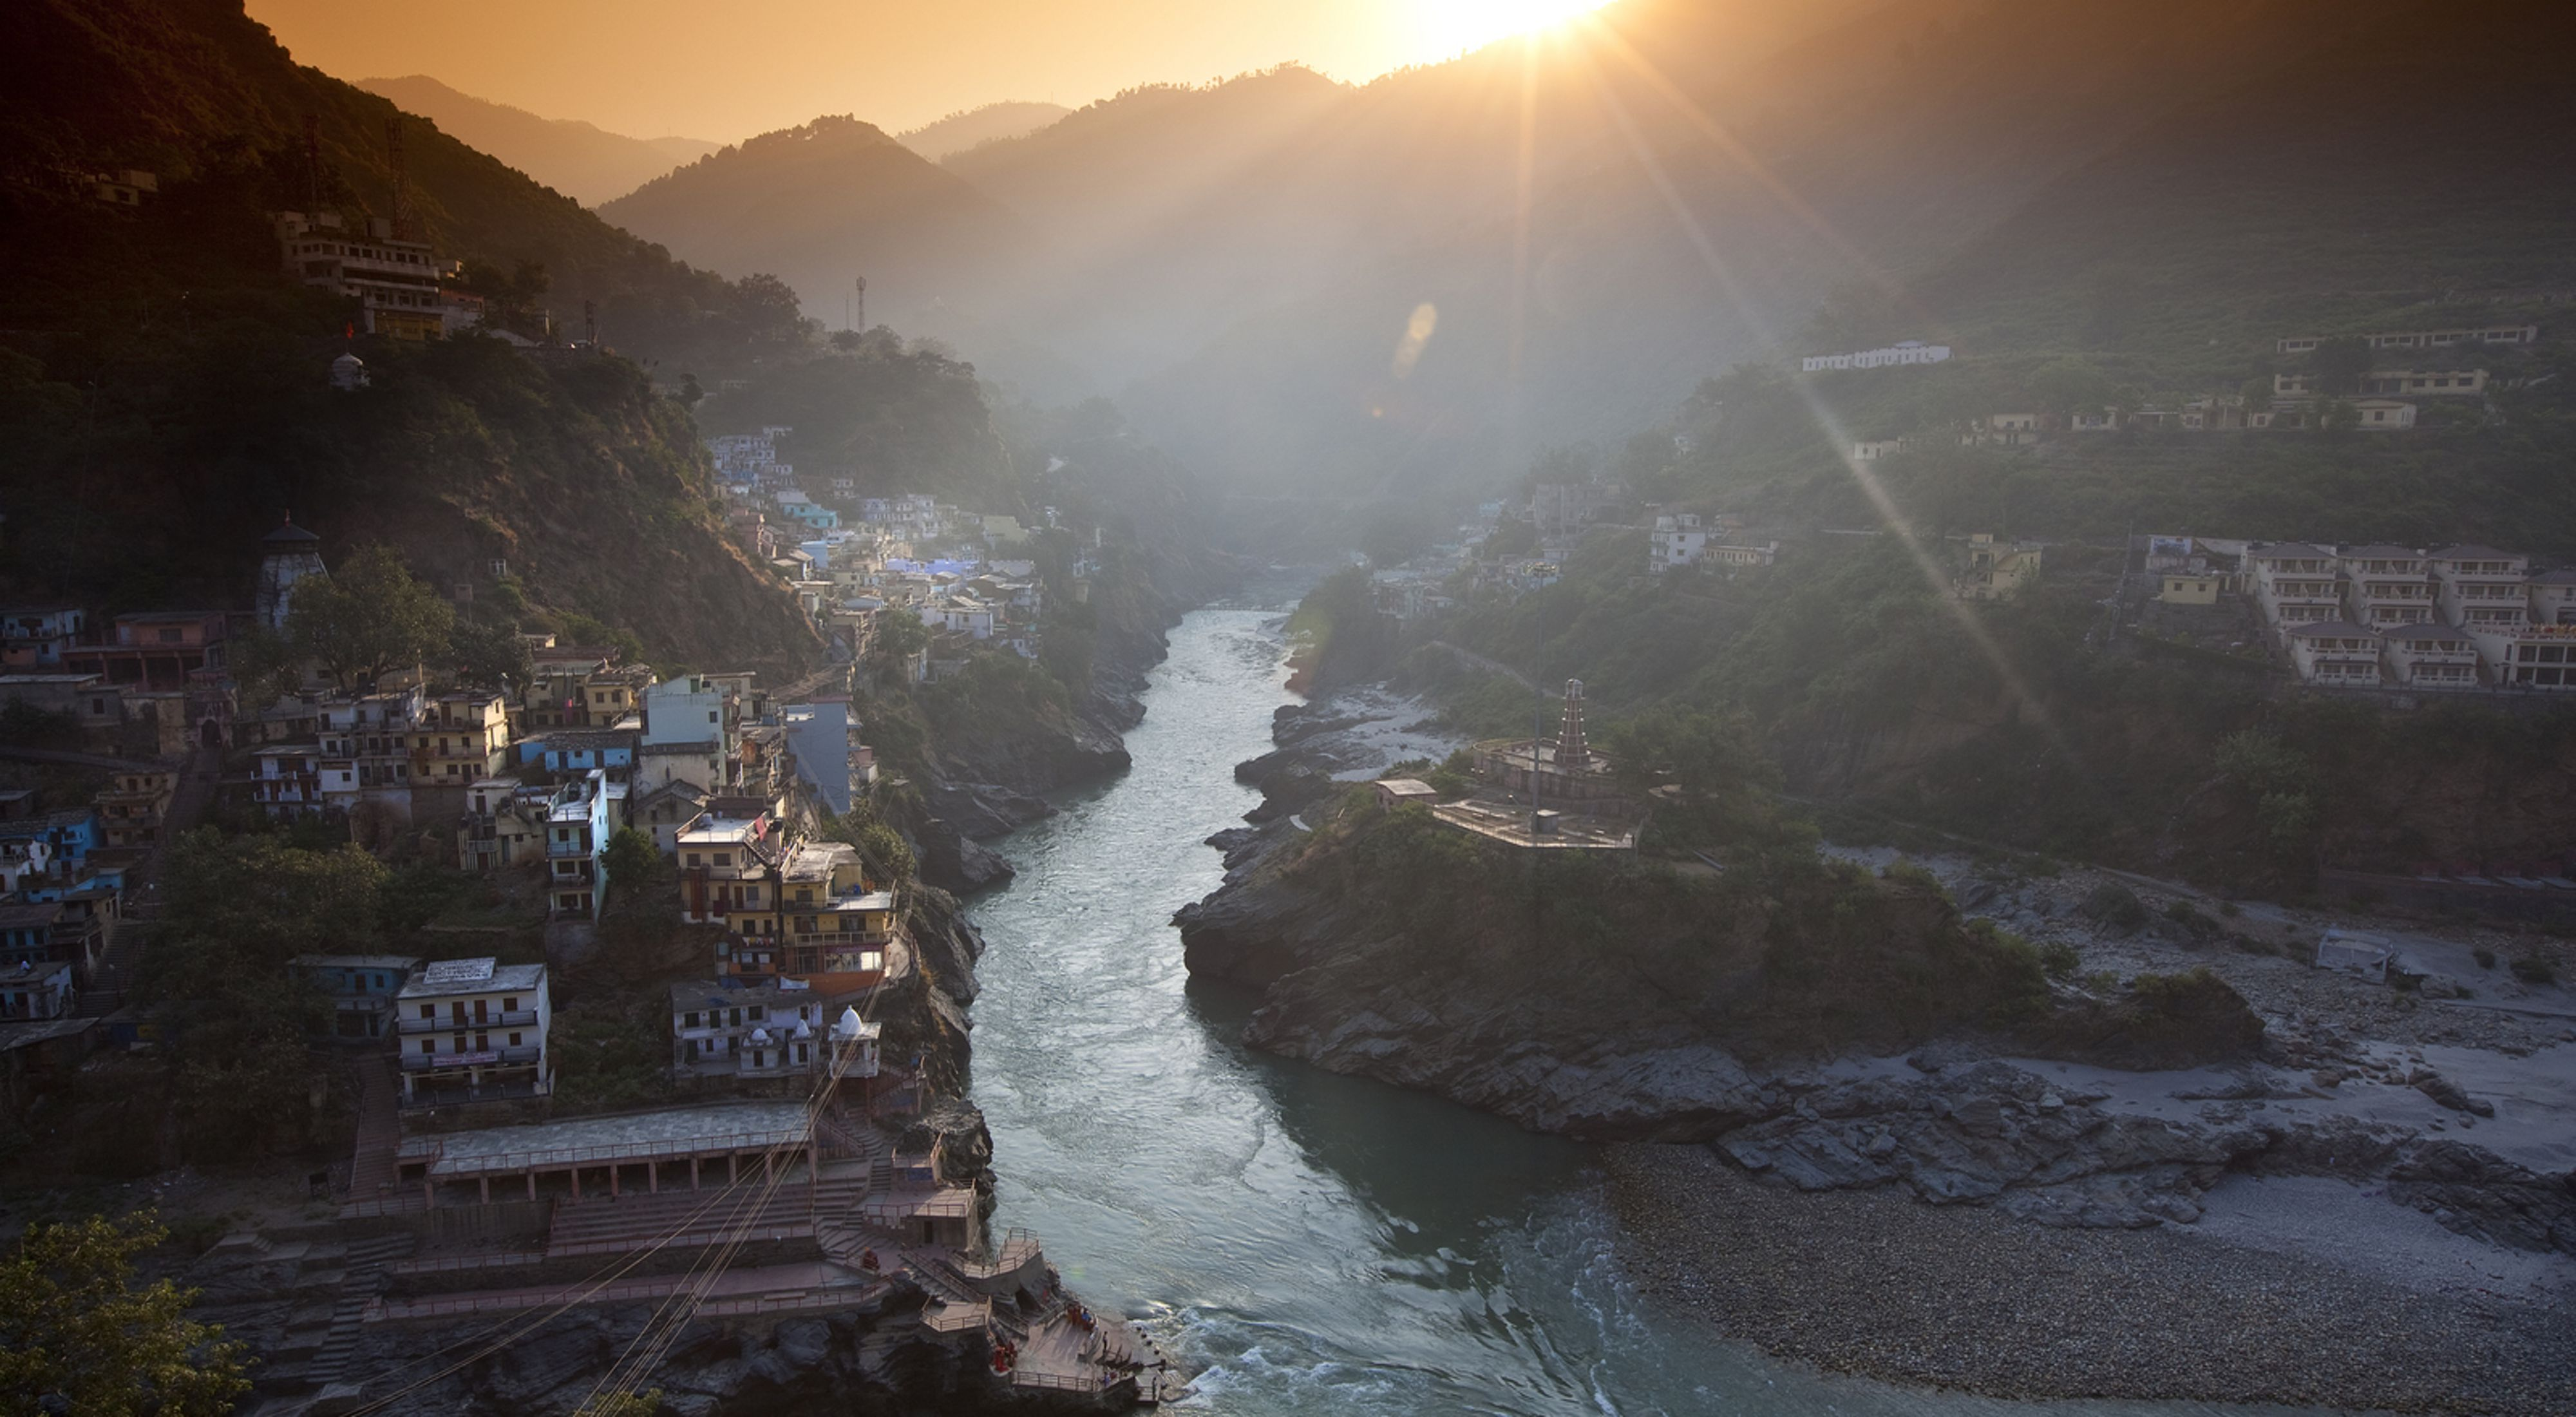 in Devprayag, India, where two other rivers, the Bhagirathi and Alaknanda, converge.